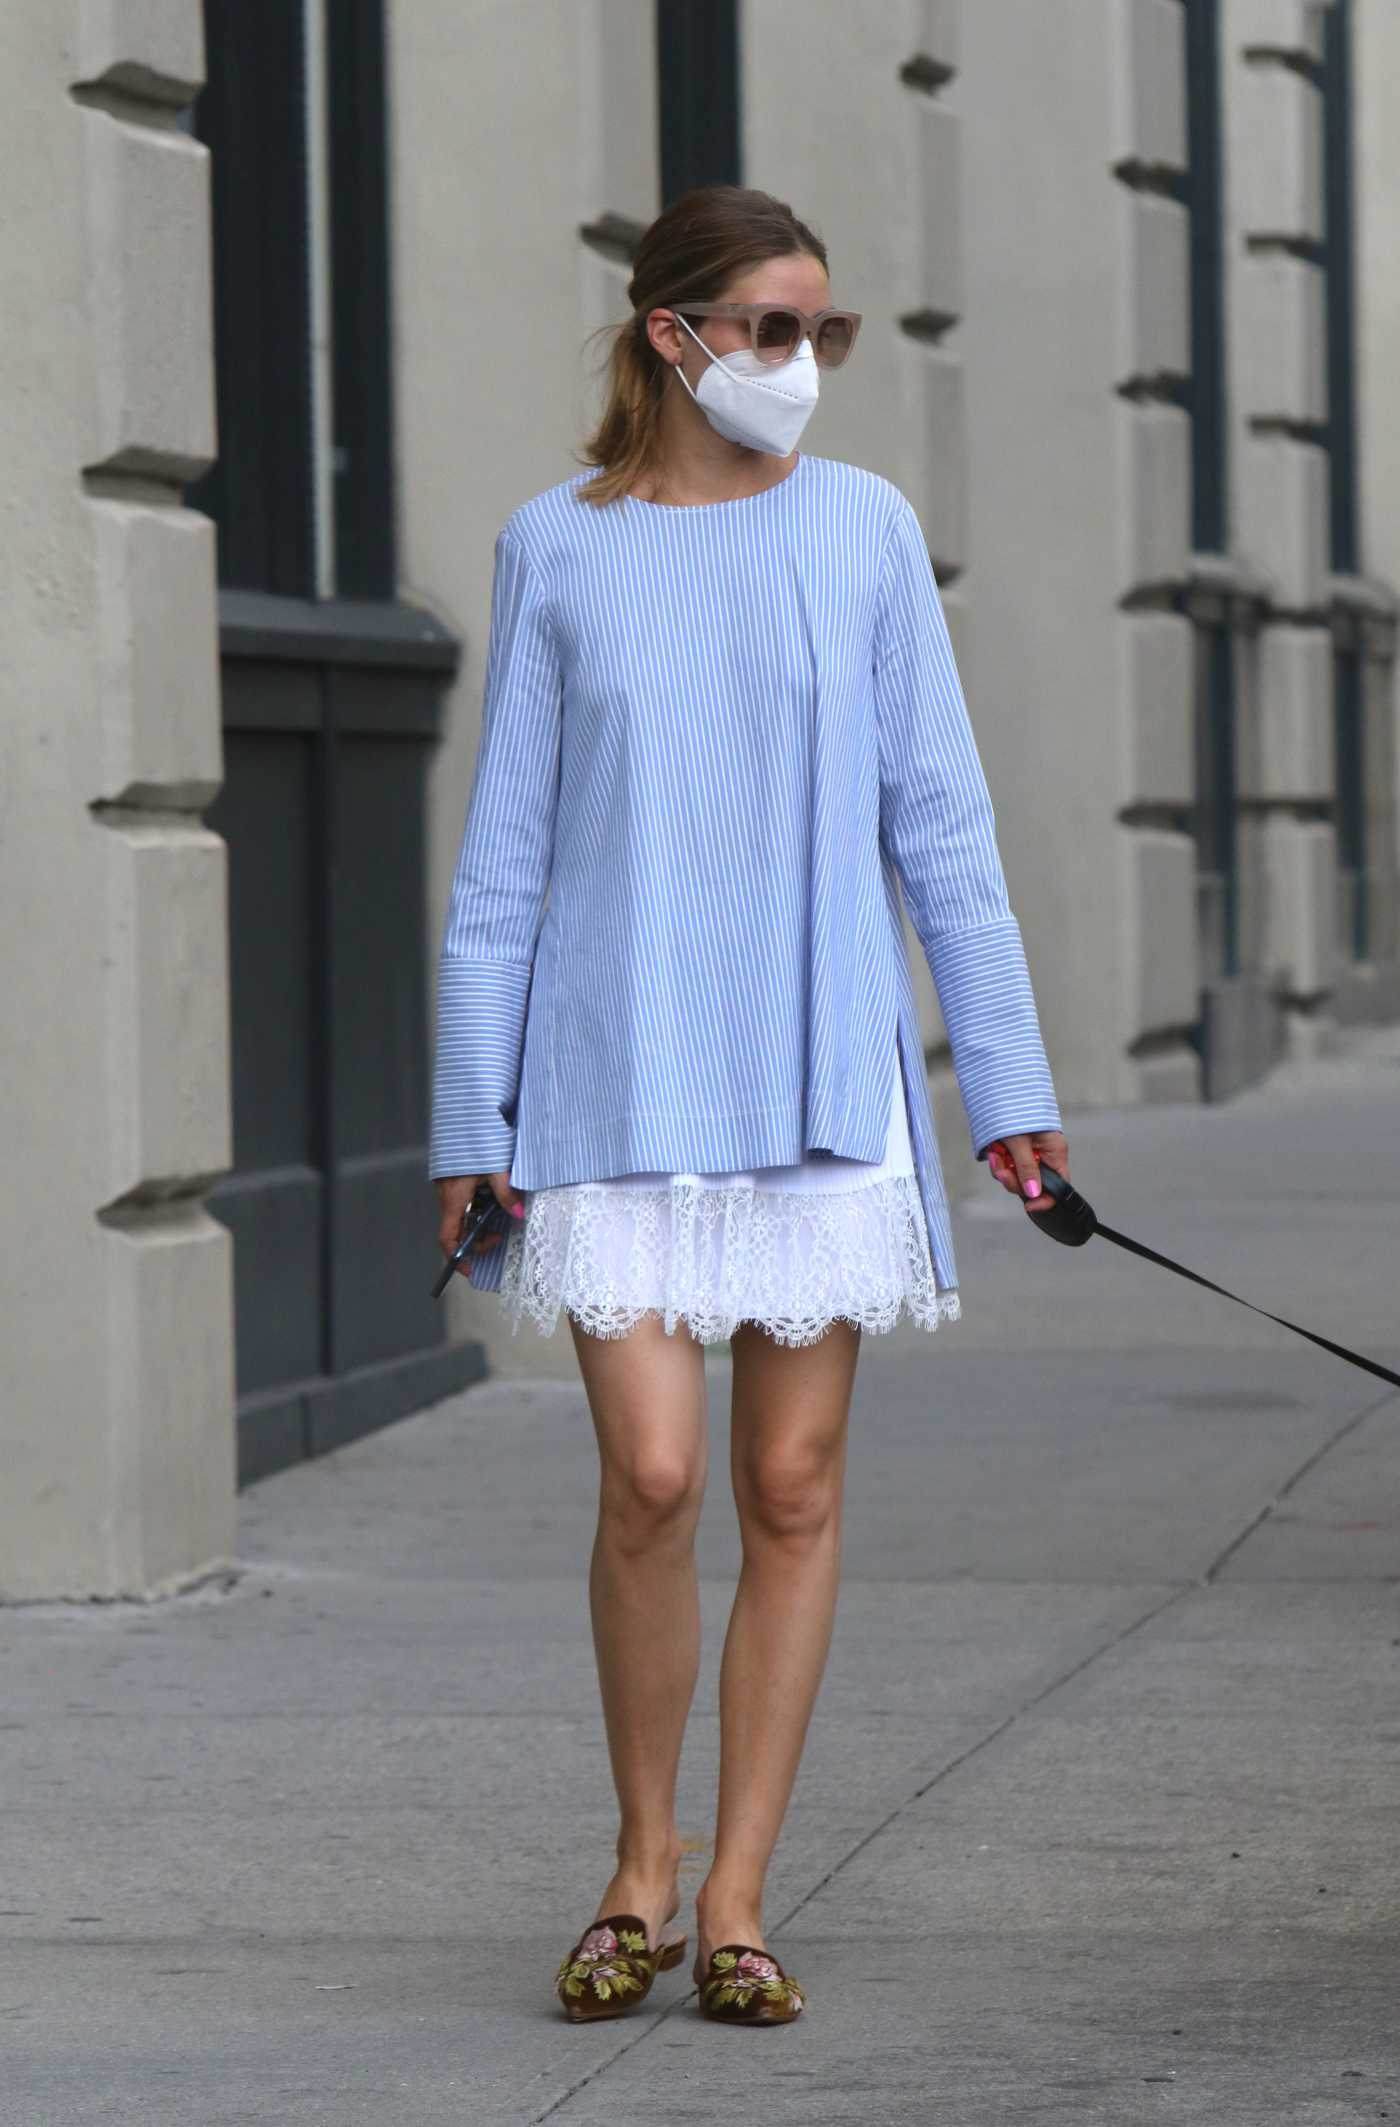 Olivia Palermo in a Protective Mask Walks Her Dog in Downtown, Brooklyn 07/19/2020